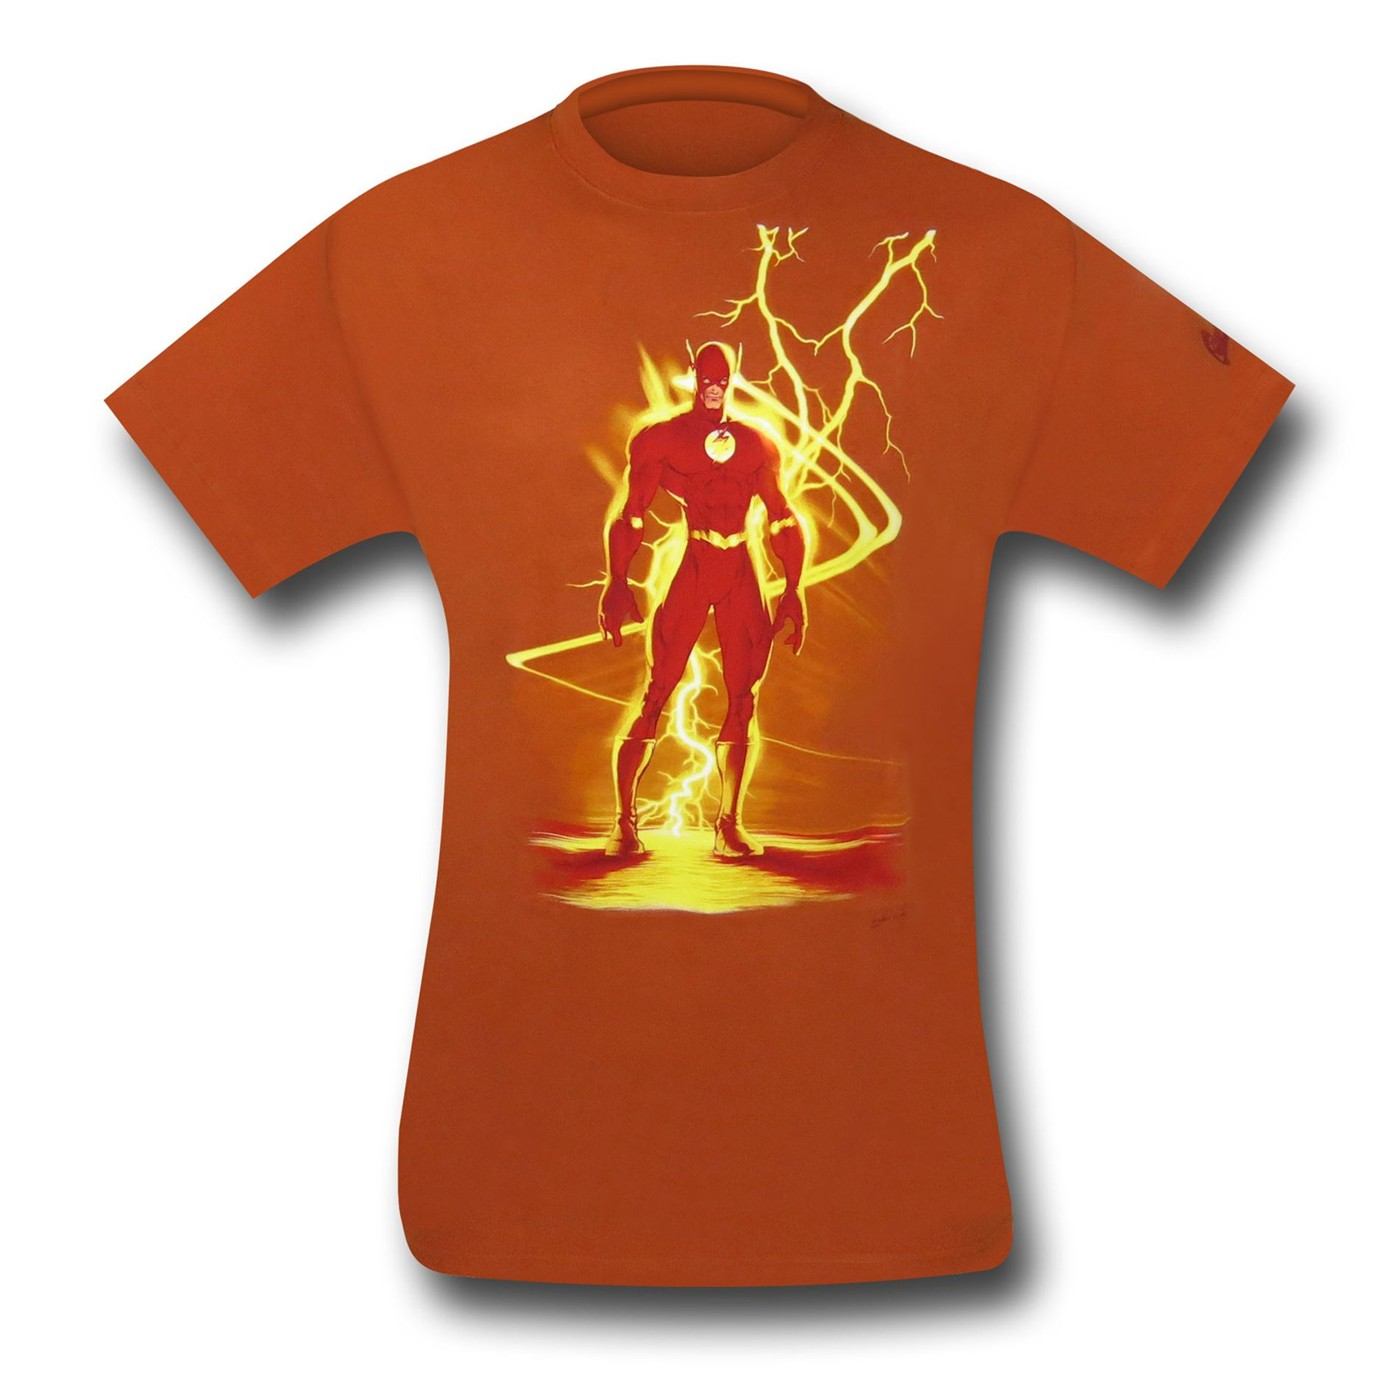 The Flash III T-Shirt by Michael Turner